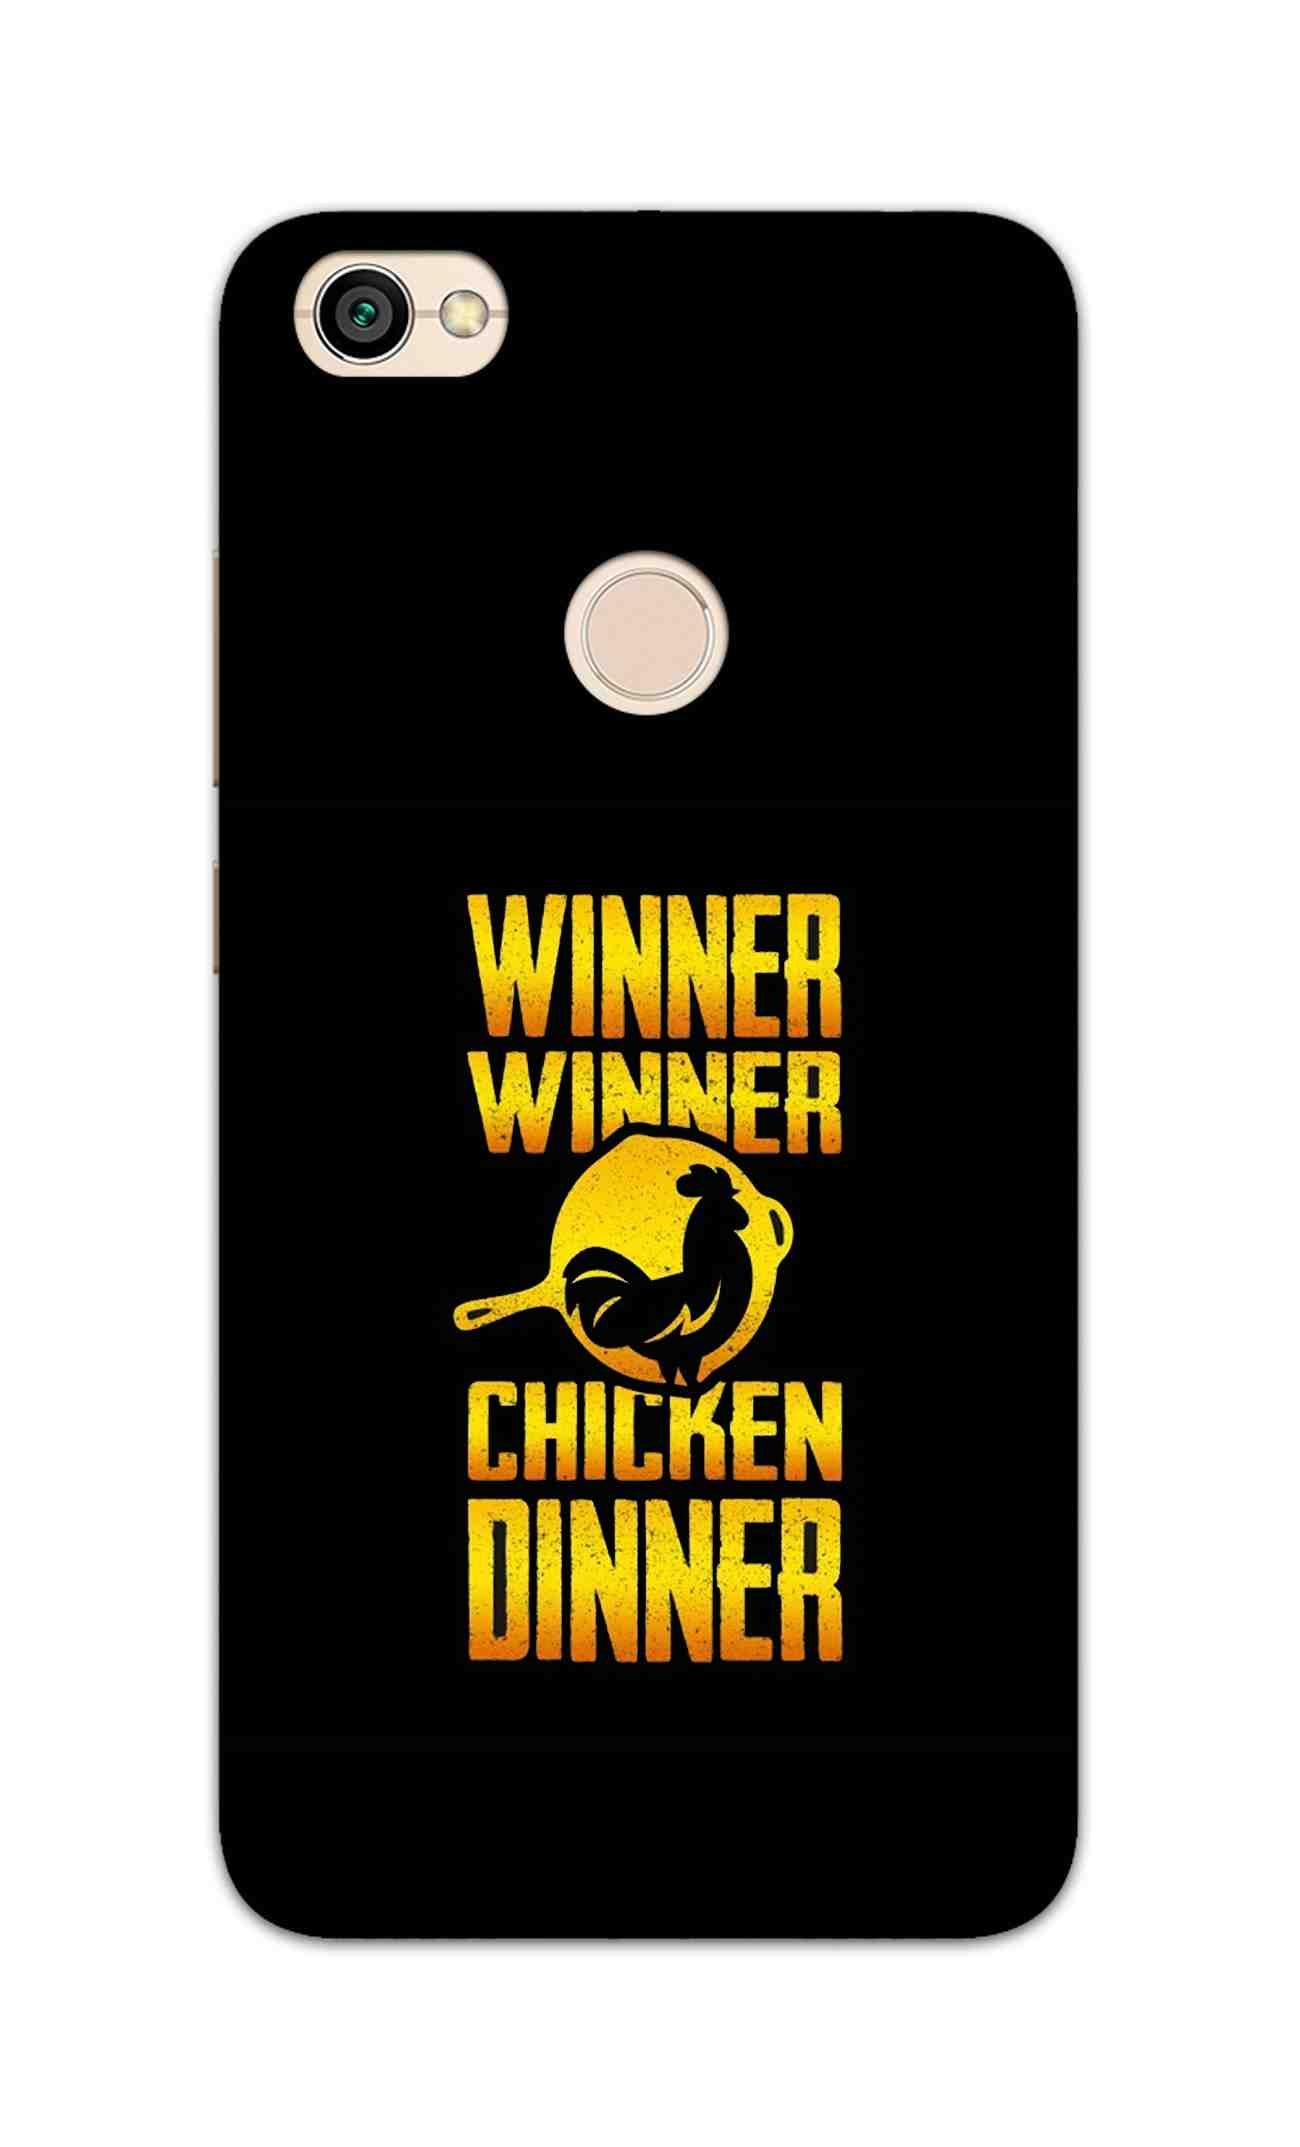 Chicken Dinner Pan For Winner Typography RedMi Y1 Mobile Cover Case - MADANYU